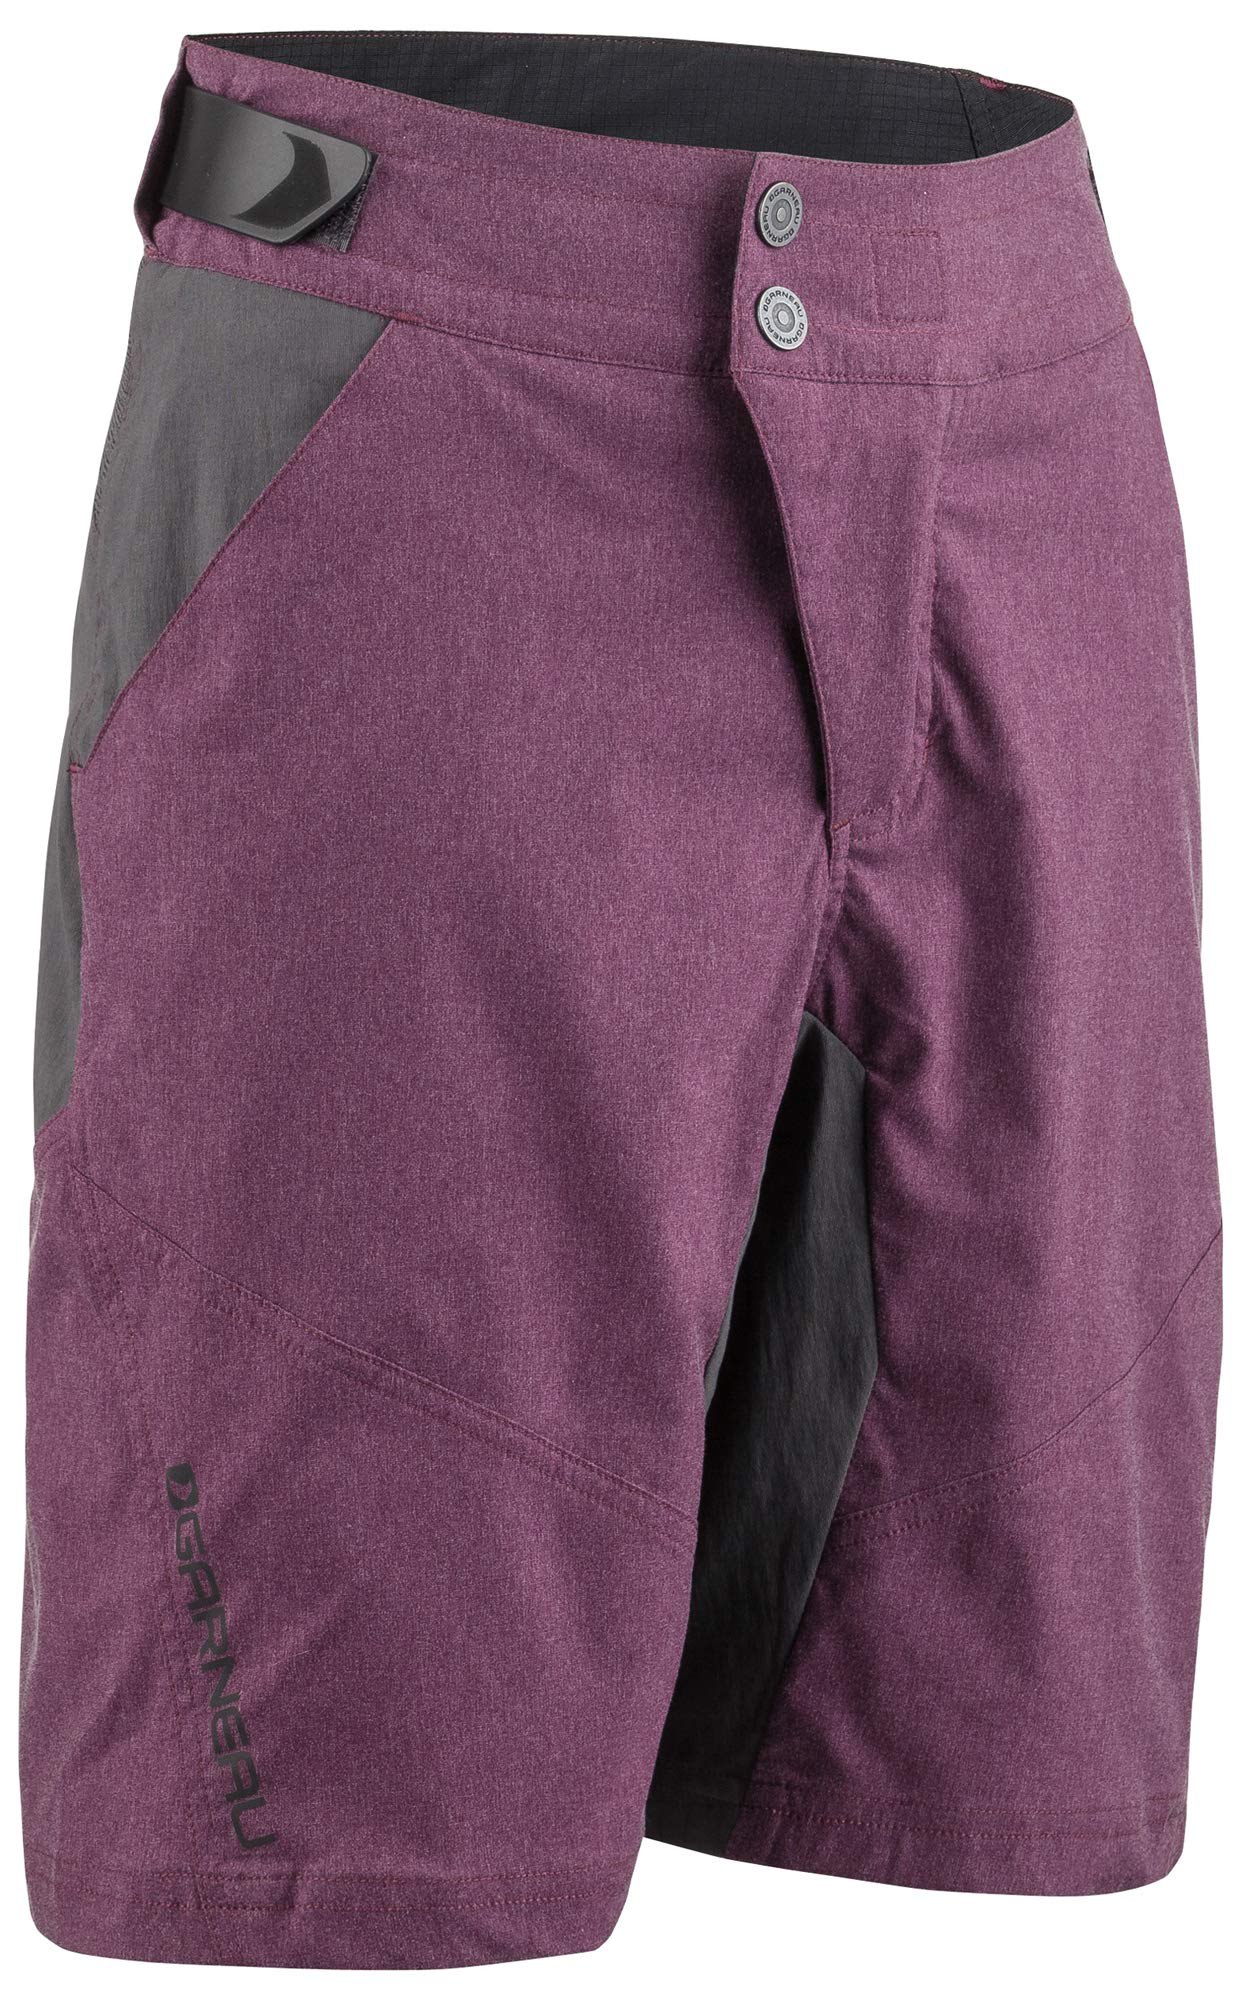 Louis Garneau Kids Dirt Bike Shorts, Shiraz, Junior X-Small by Louis Garneau